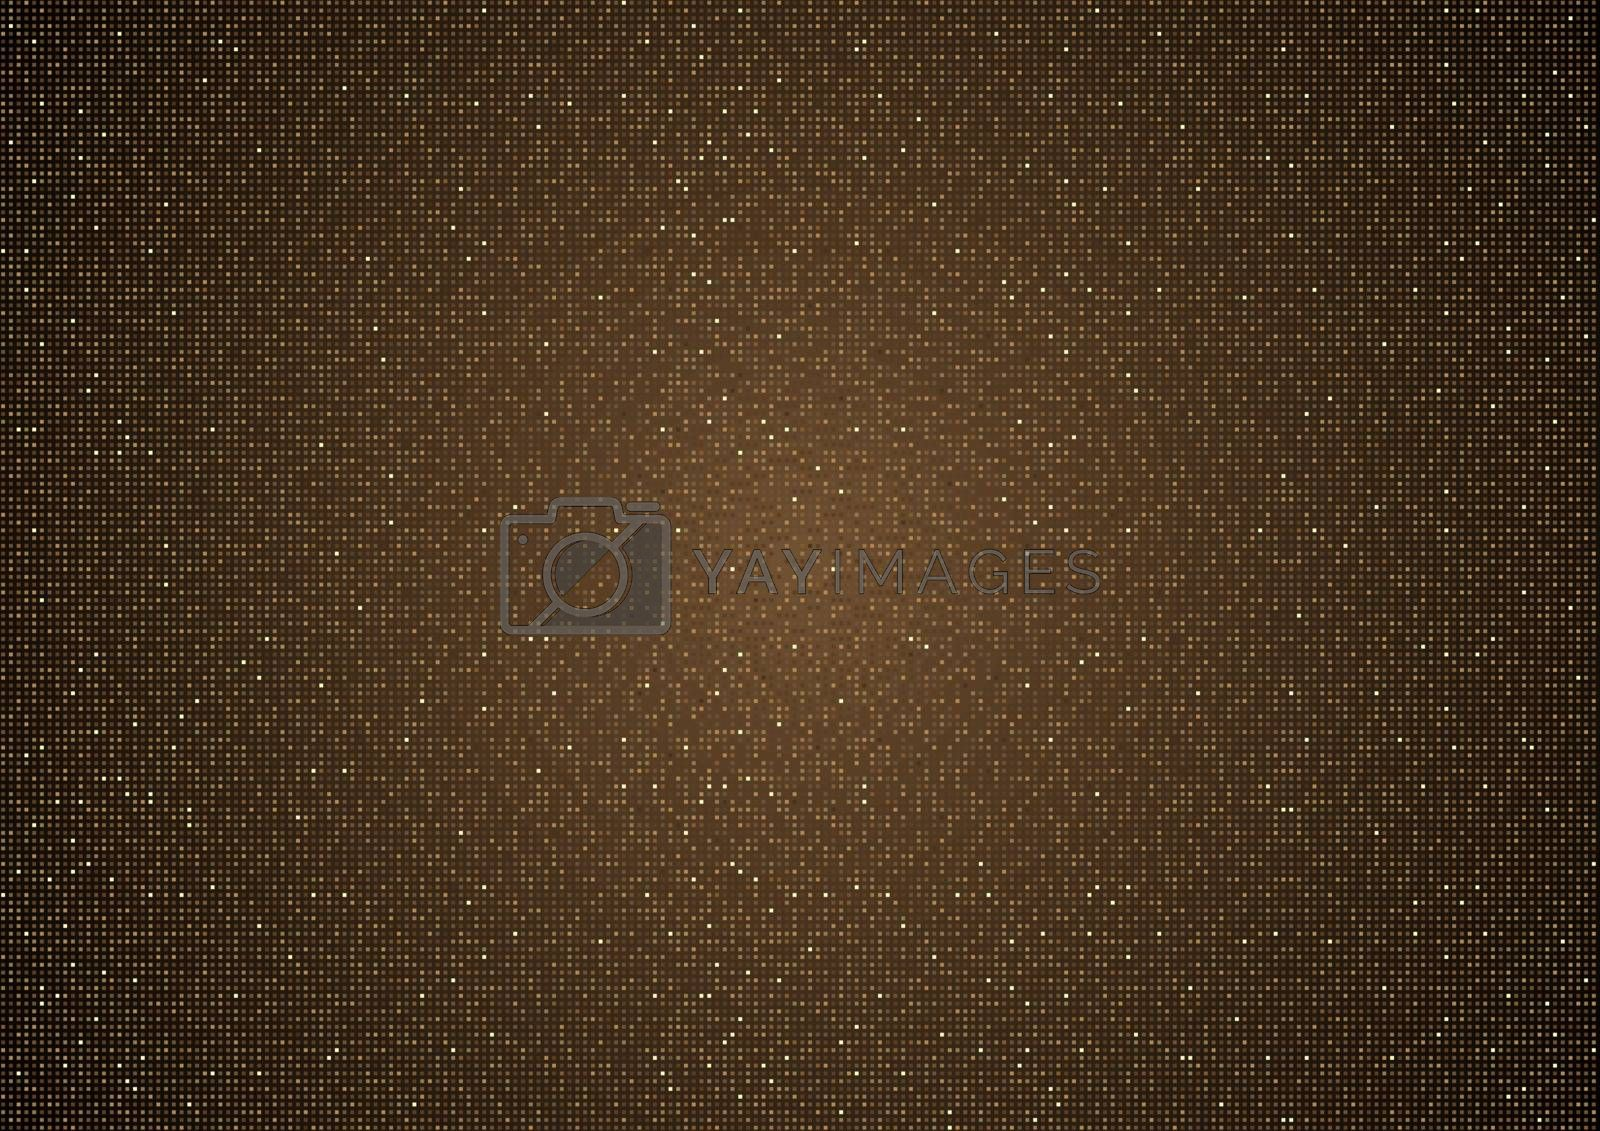 Copper Halftone Background Texture with Dotted Structure - Fine Pattern for Your Graphic Design Illustration, Vector Design Element